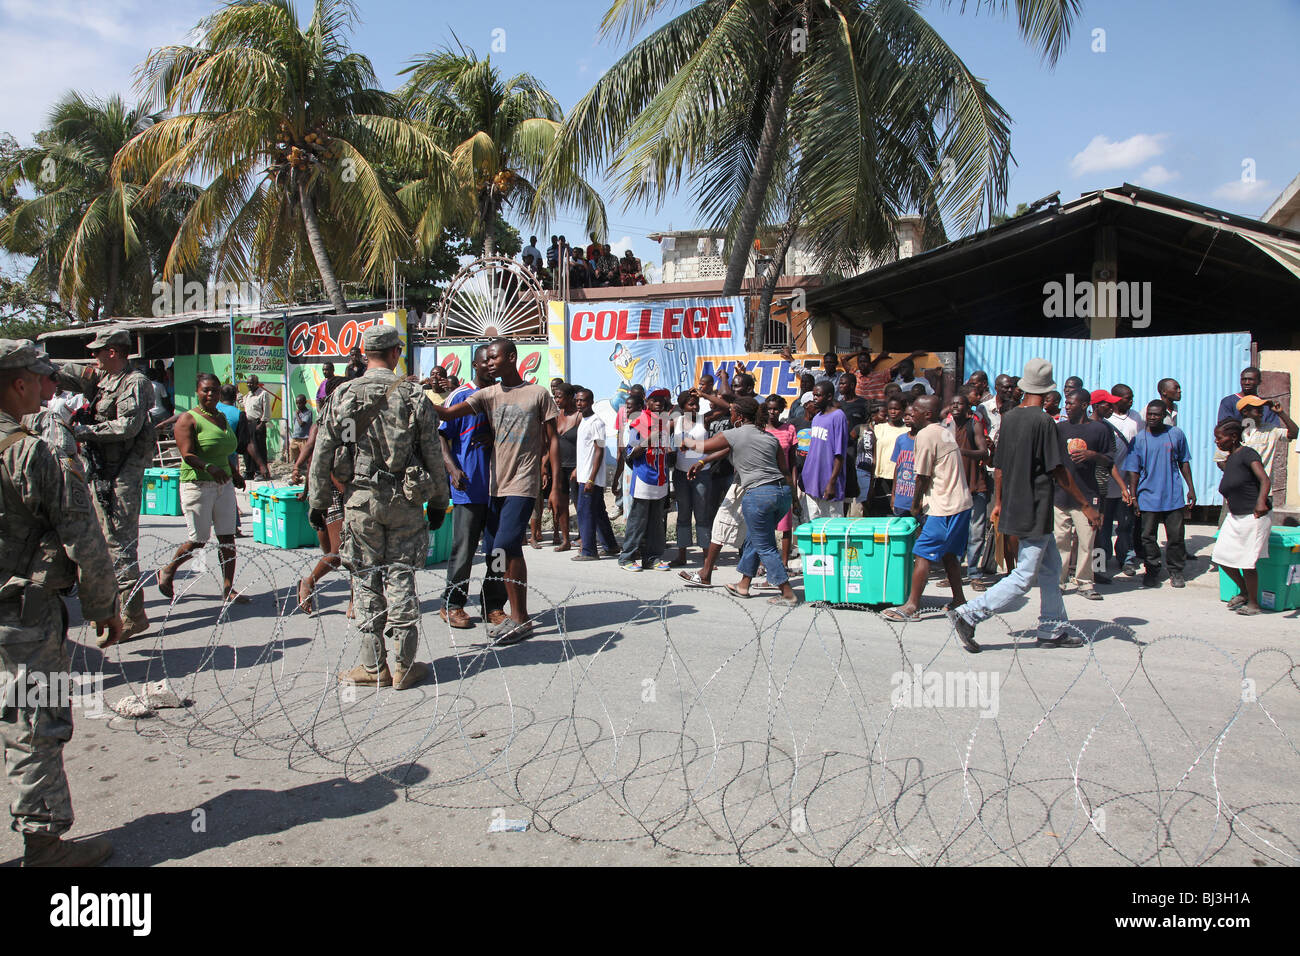 Soldiers of the 82nd Airborne, US Army distribute aid in Port au Prince, Haiti following the earthquake of January - Stock Image